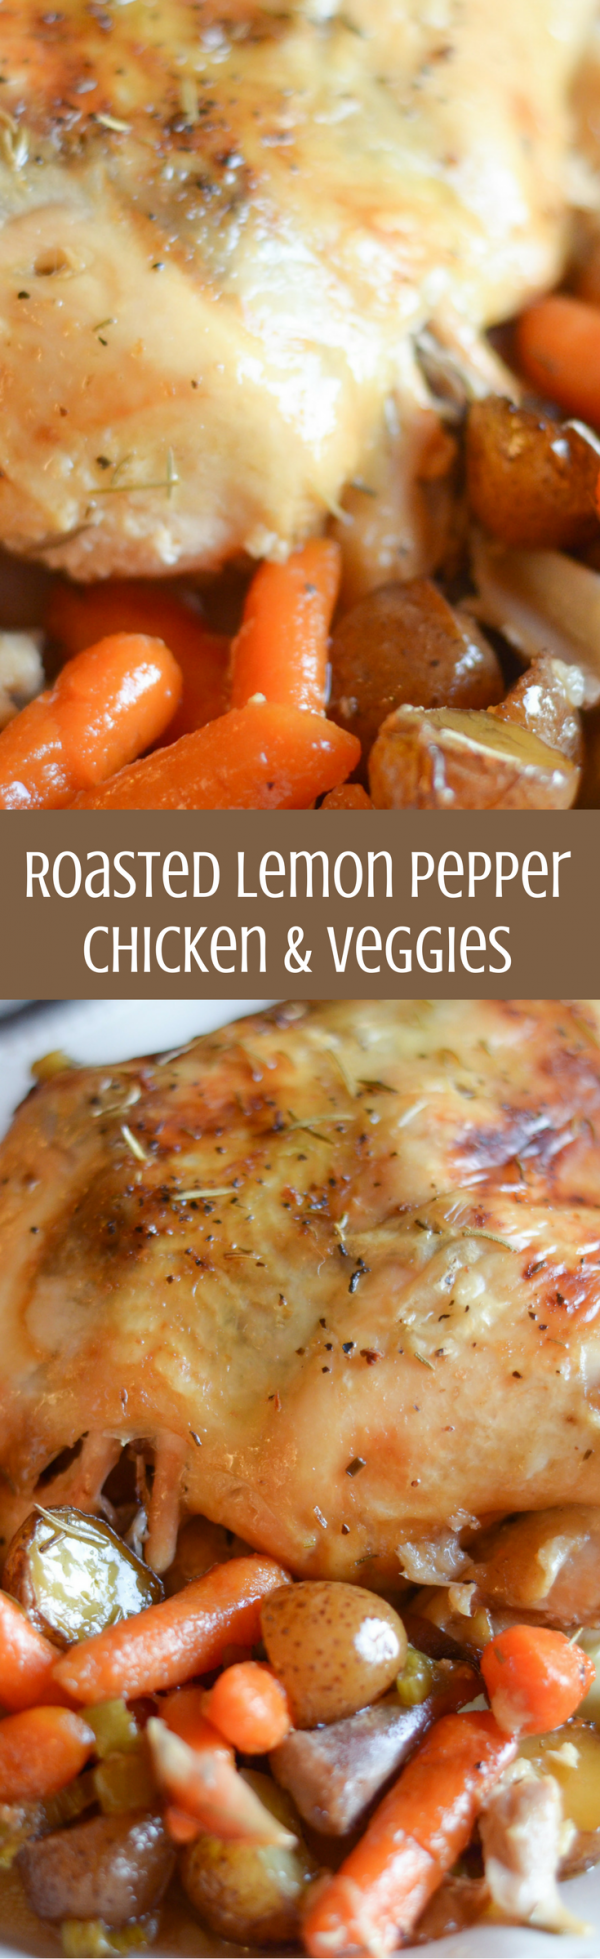 Roasted Lemon Pepper Chicken & Veggies